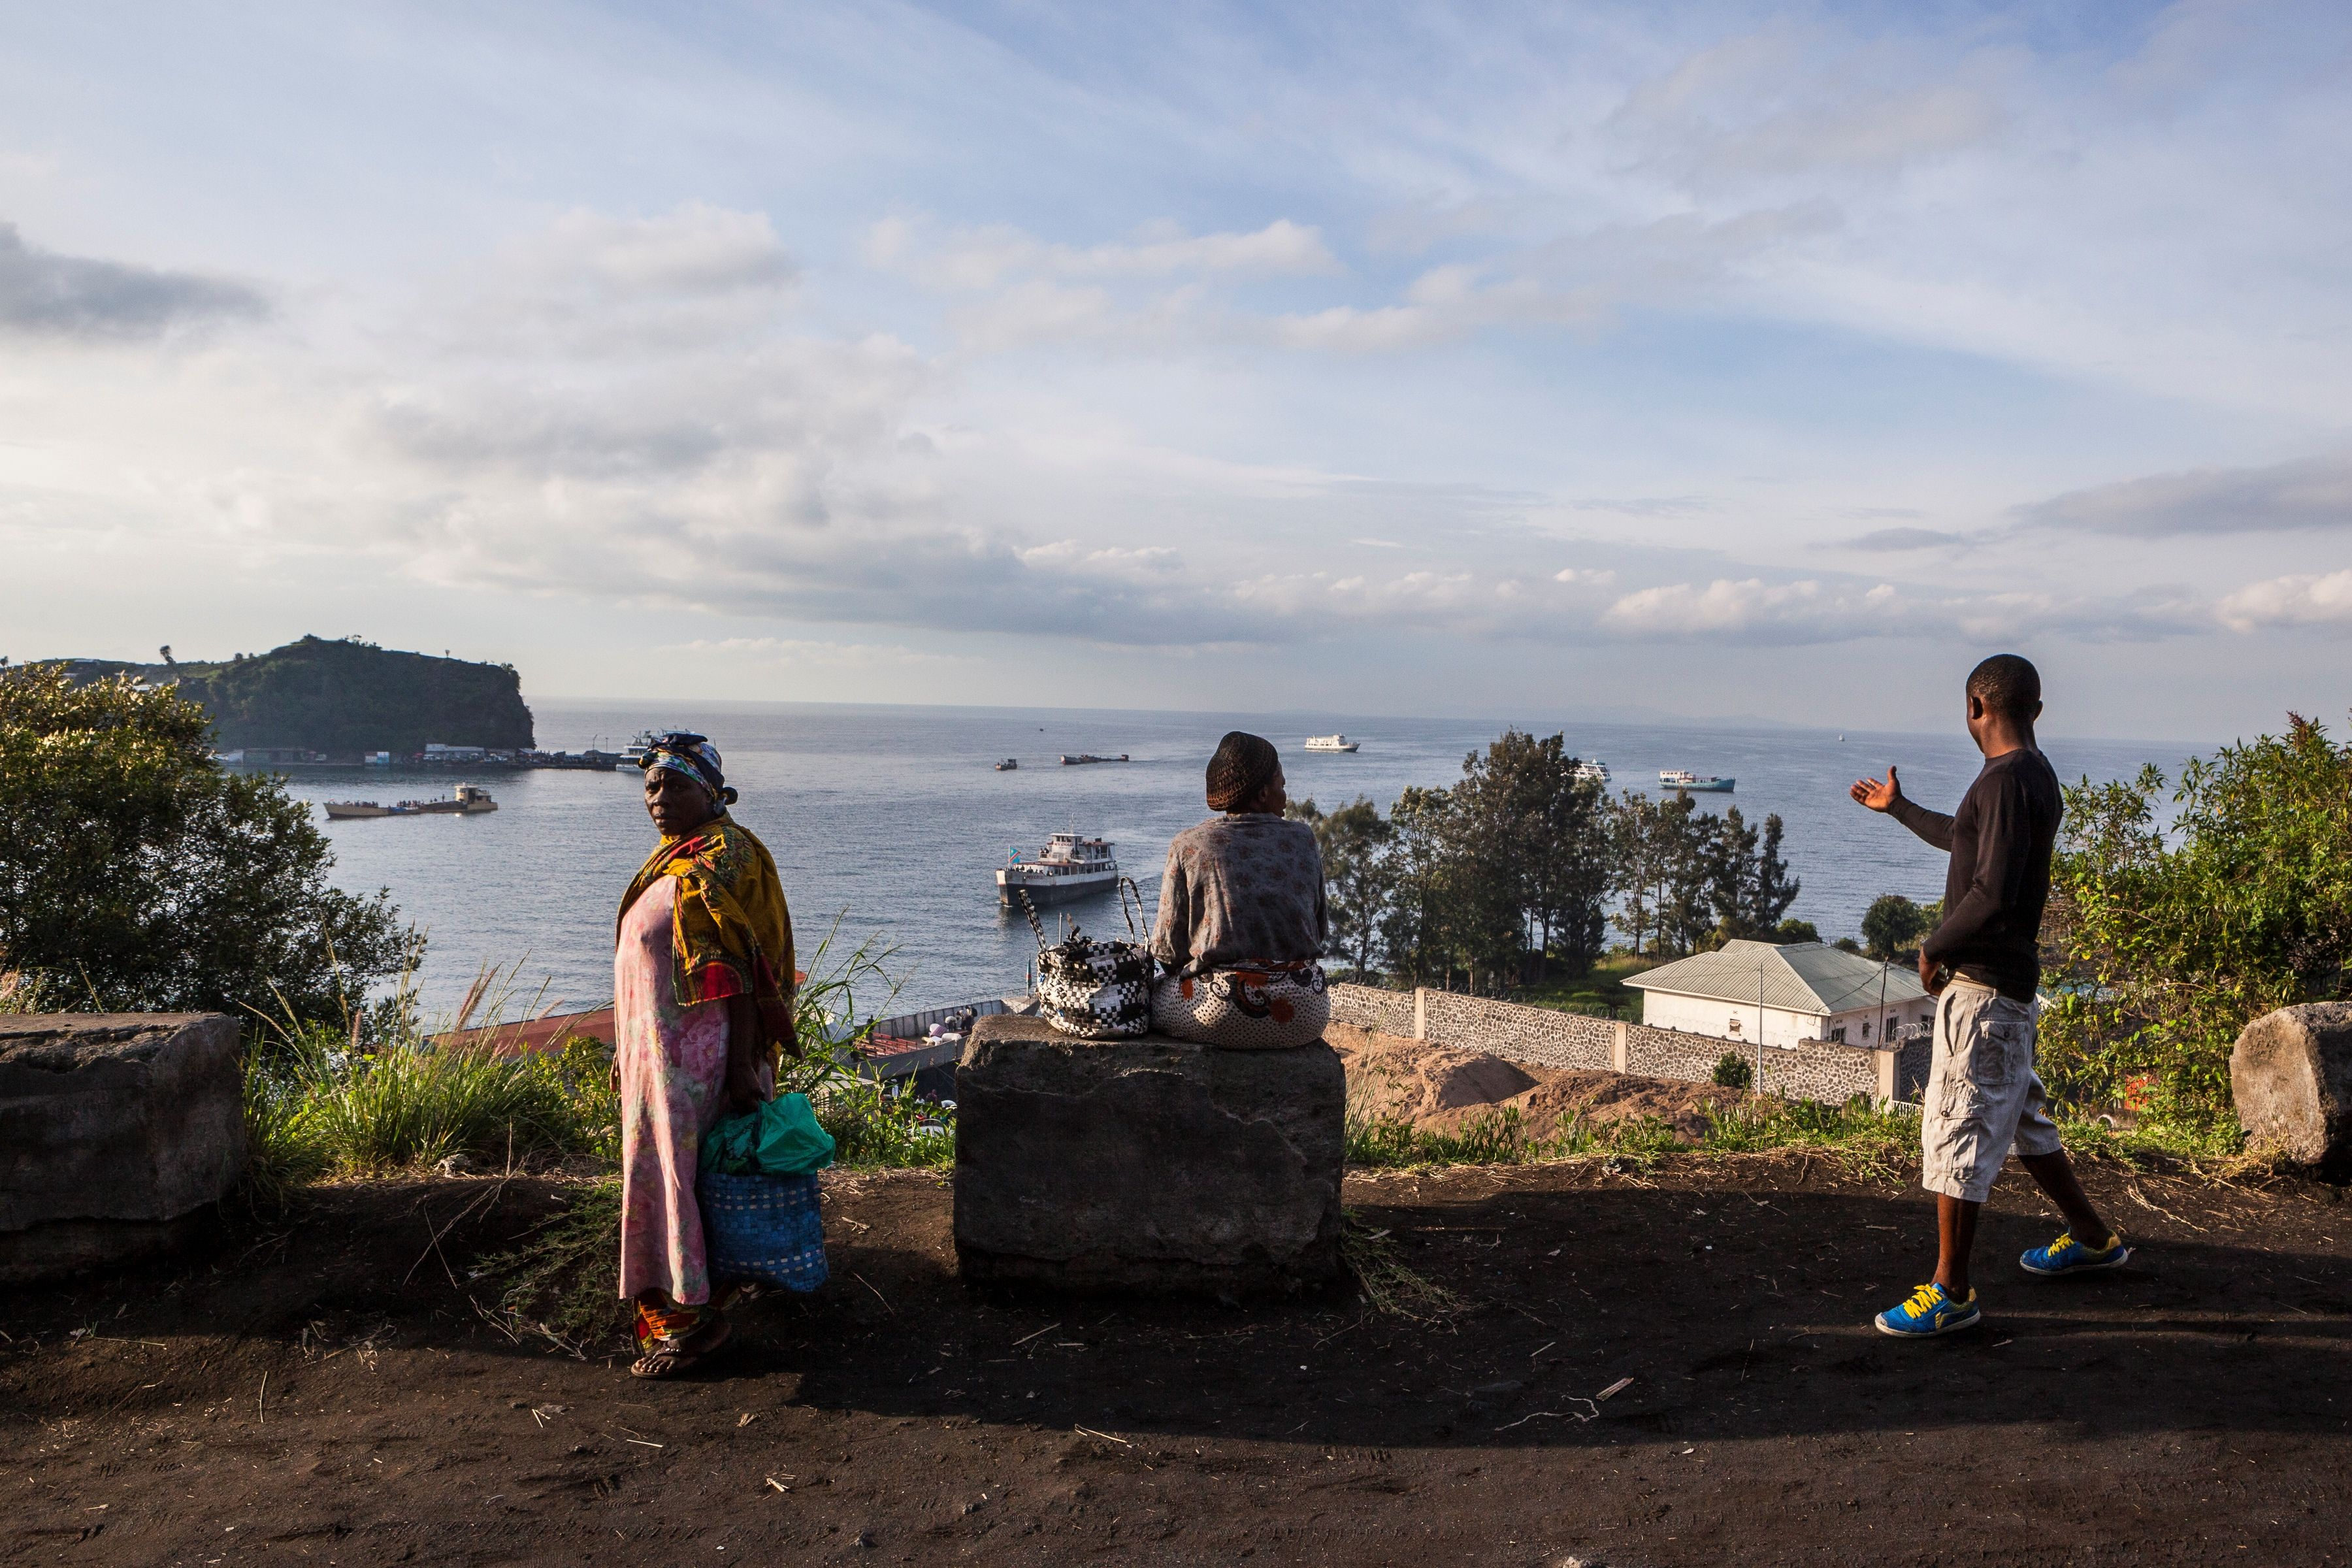 Lake Kivu in Goma. Photo by Eduardo Soteras/AFP/Getty Images.